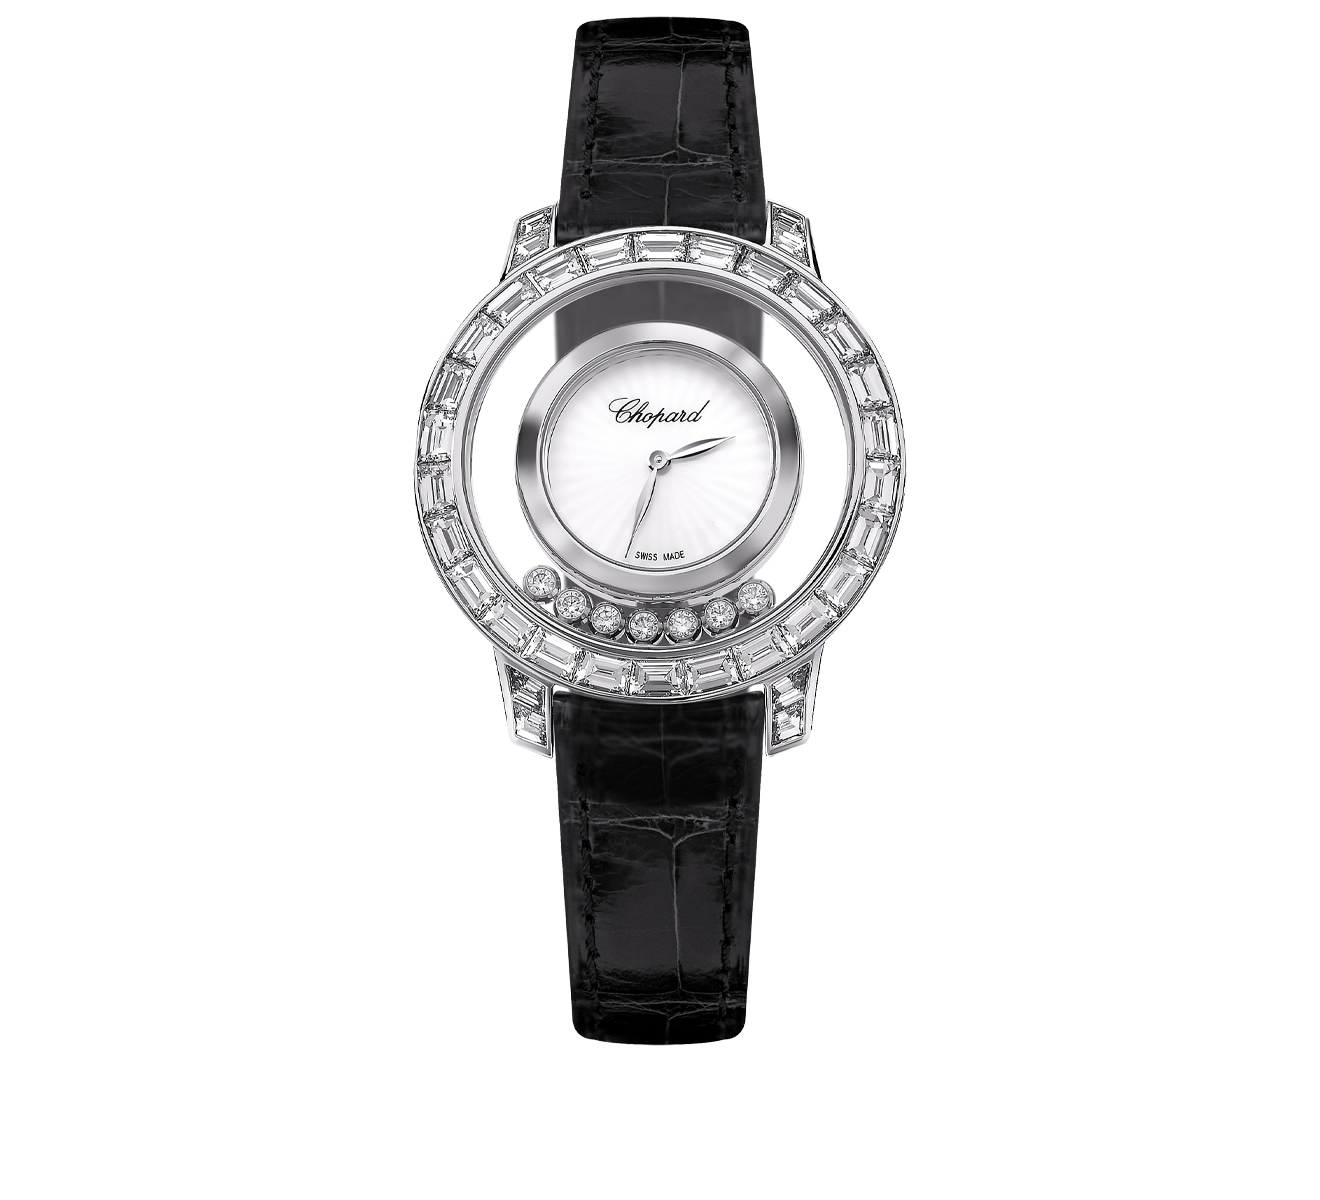 Часы Joaillerie Chopard Happy Diamonds 20A002-1001 - фото 1 – Mercury